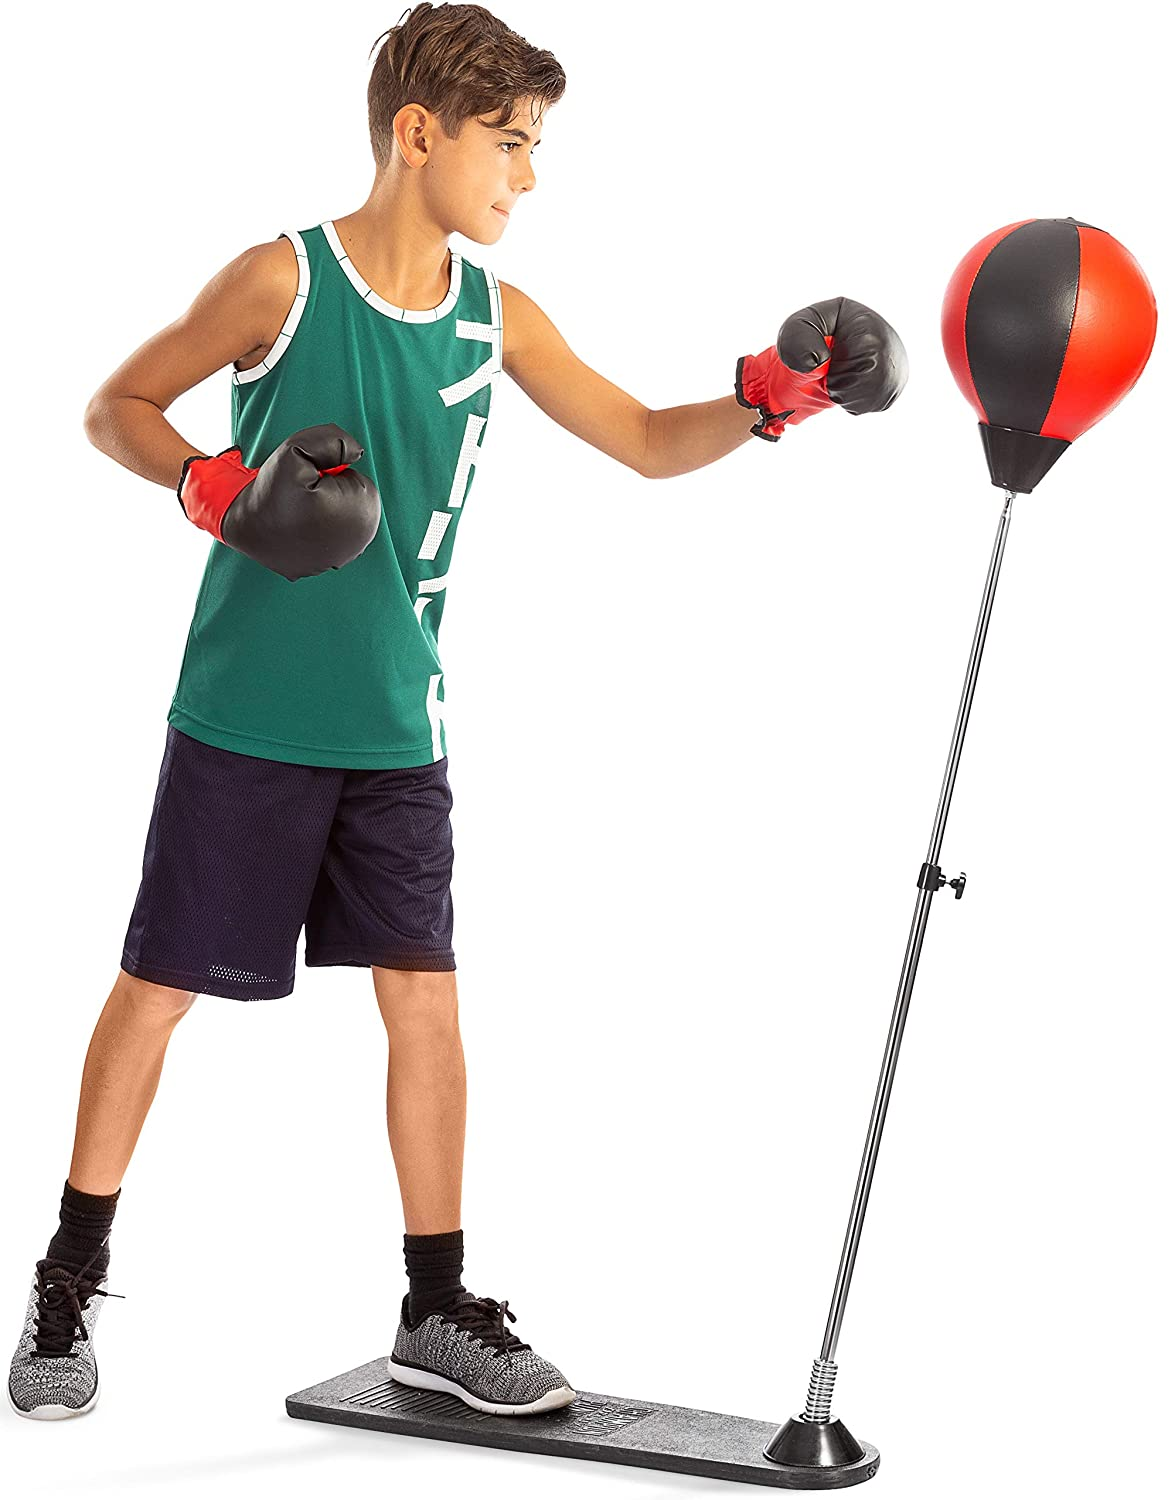 Top 9 Best Inflatable Punching Bags for Kids Reviews in 2019 6